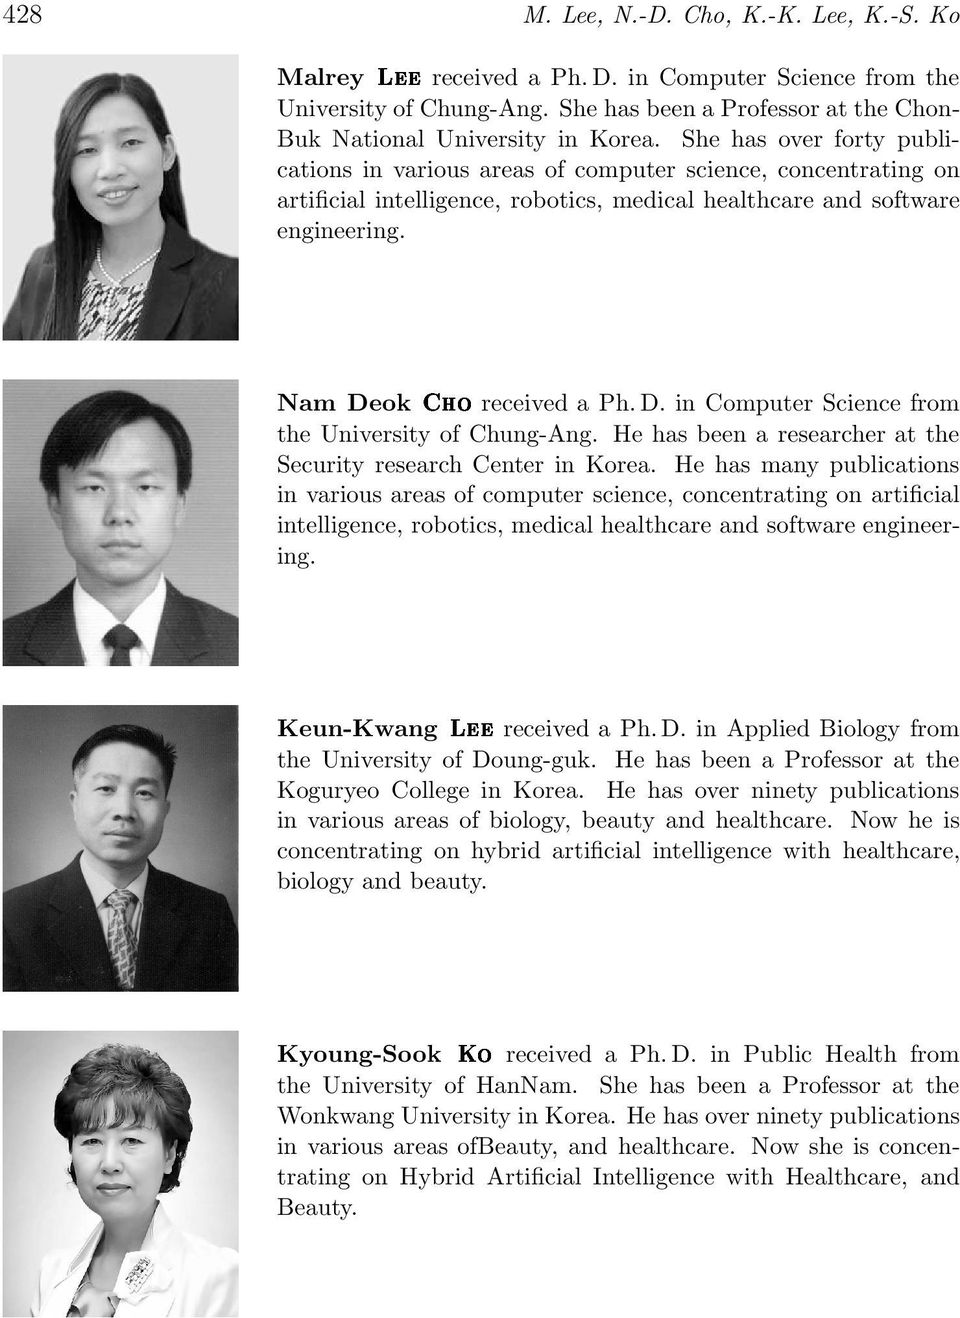 ok Óreceived a Ph.D. in Computer Science from the University of Chung-Ang. He has been a researcher at the Security research Center in Korea.